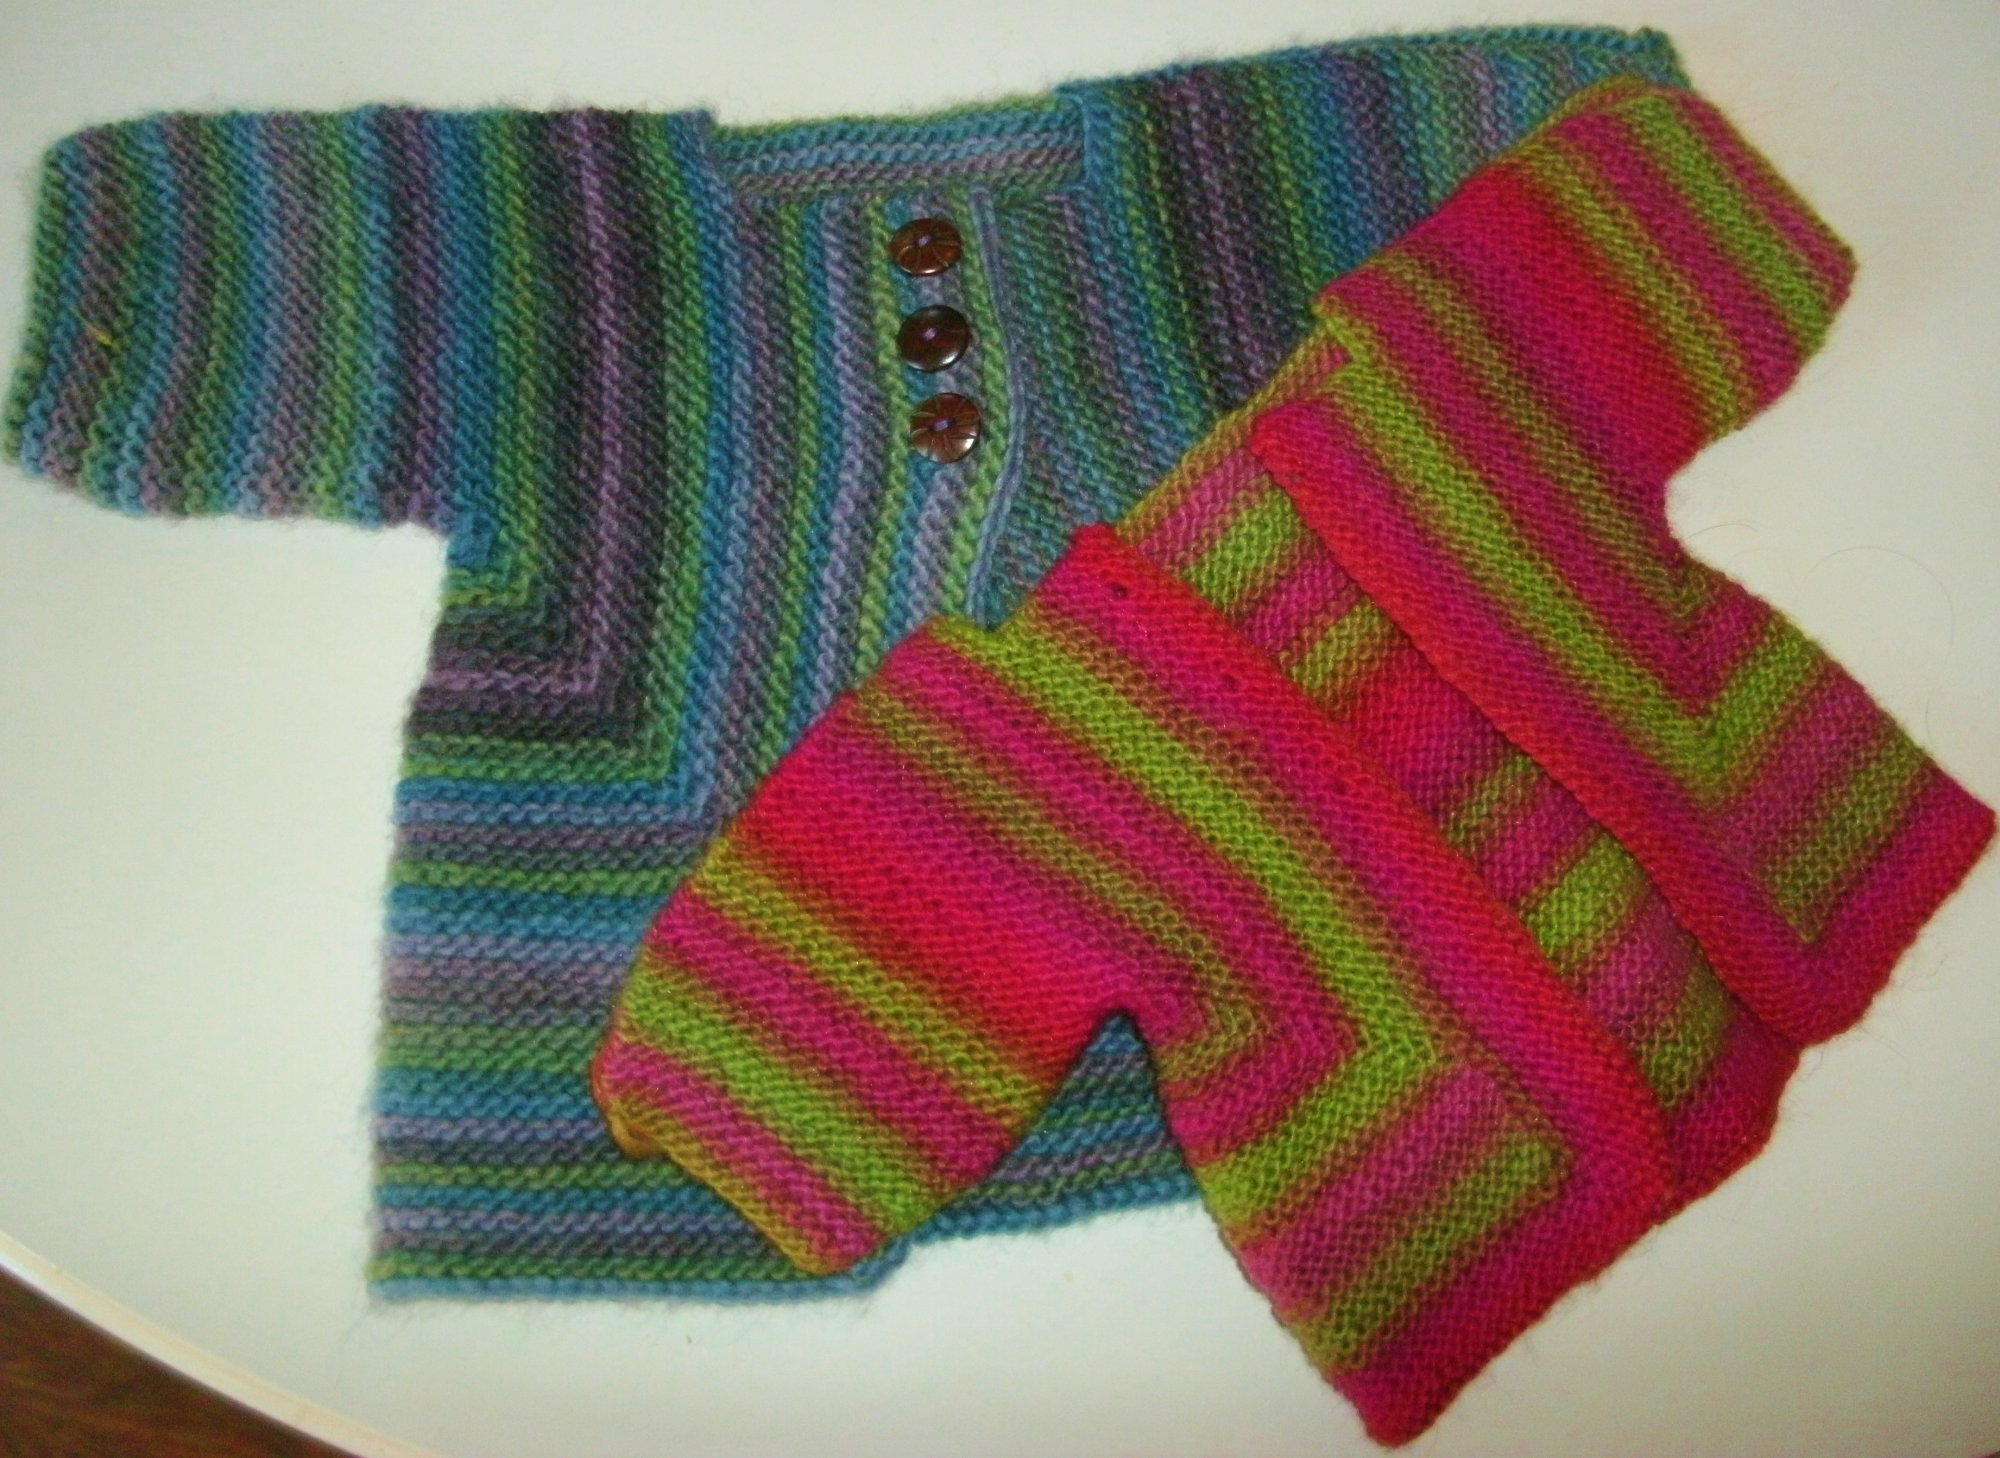 acd8c8f7c529 Knitting Classes